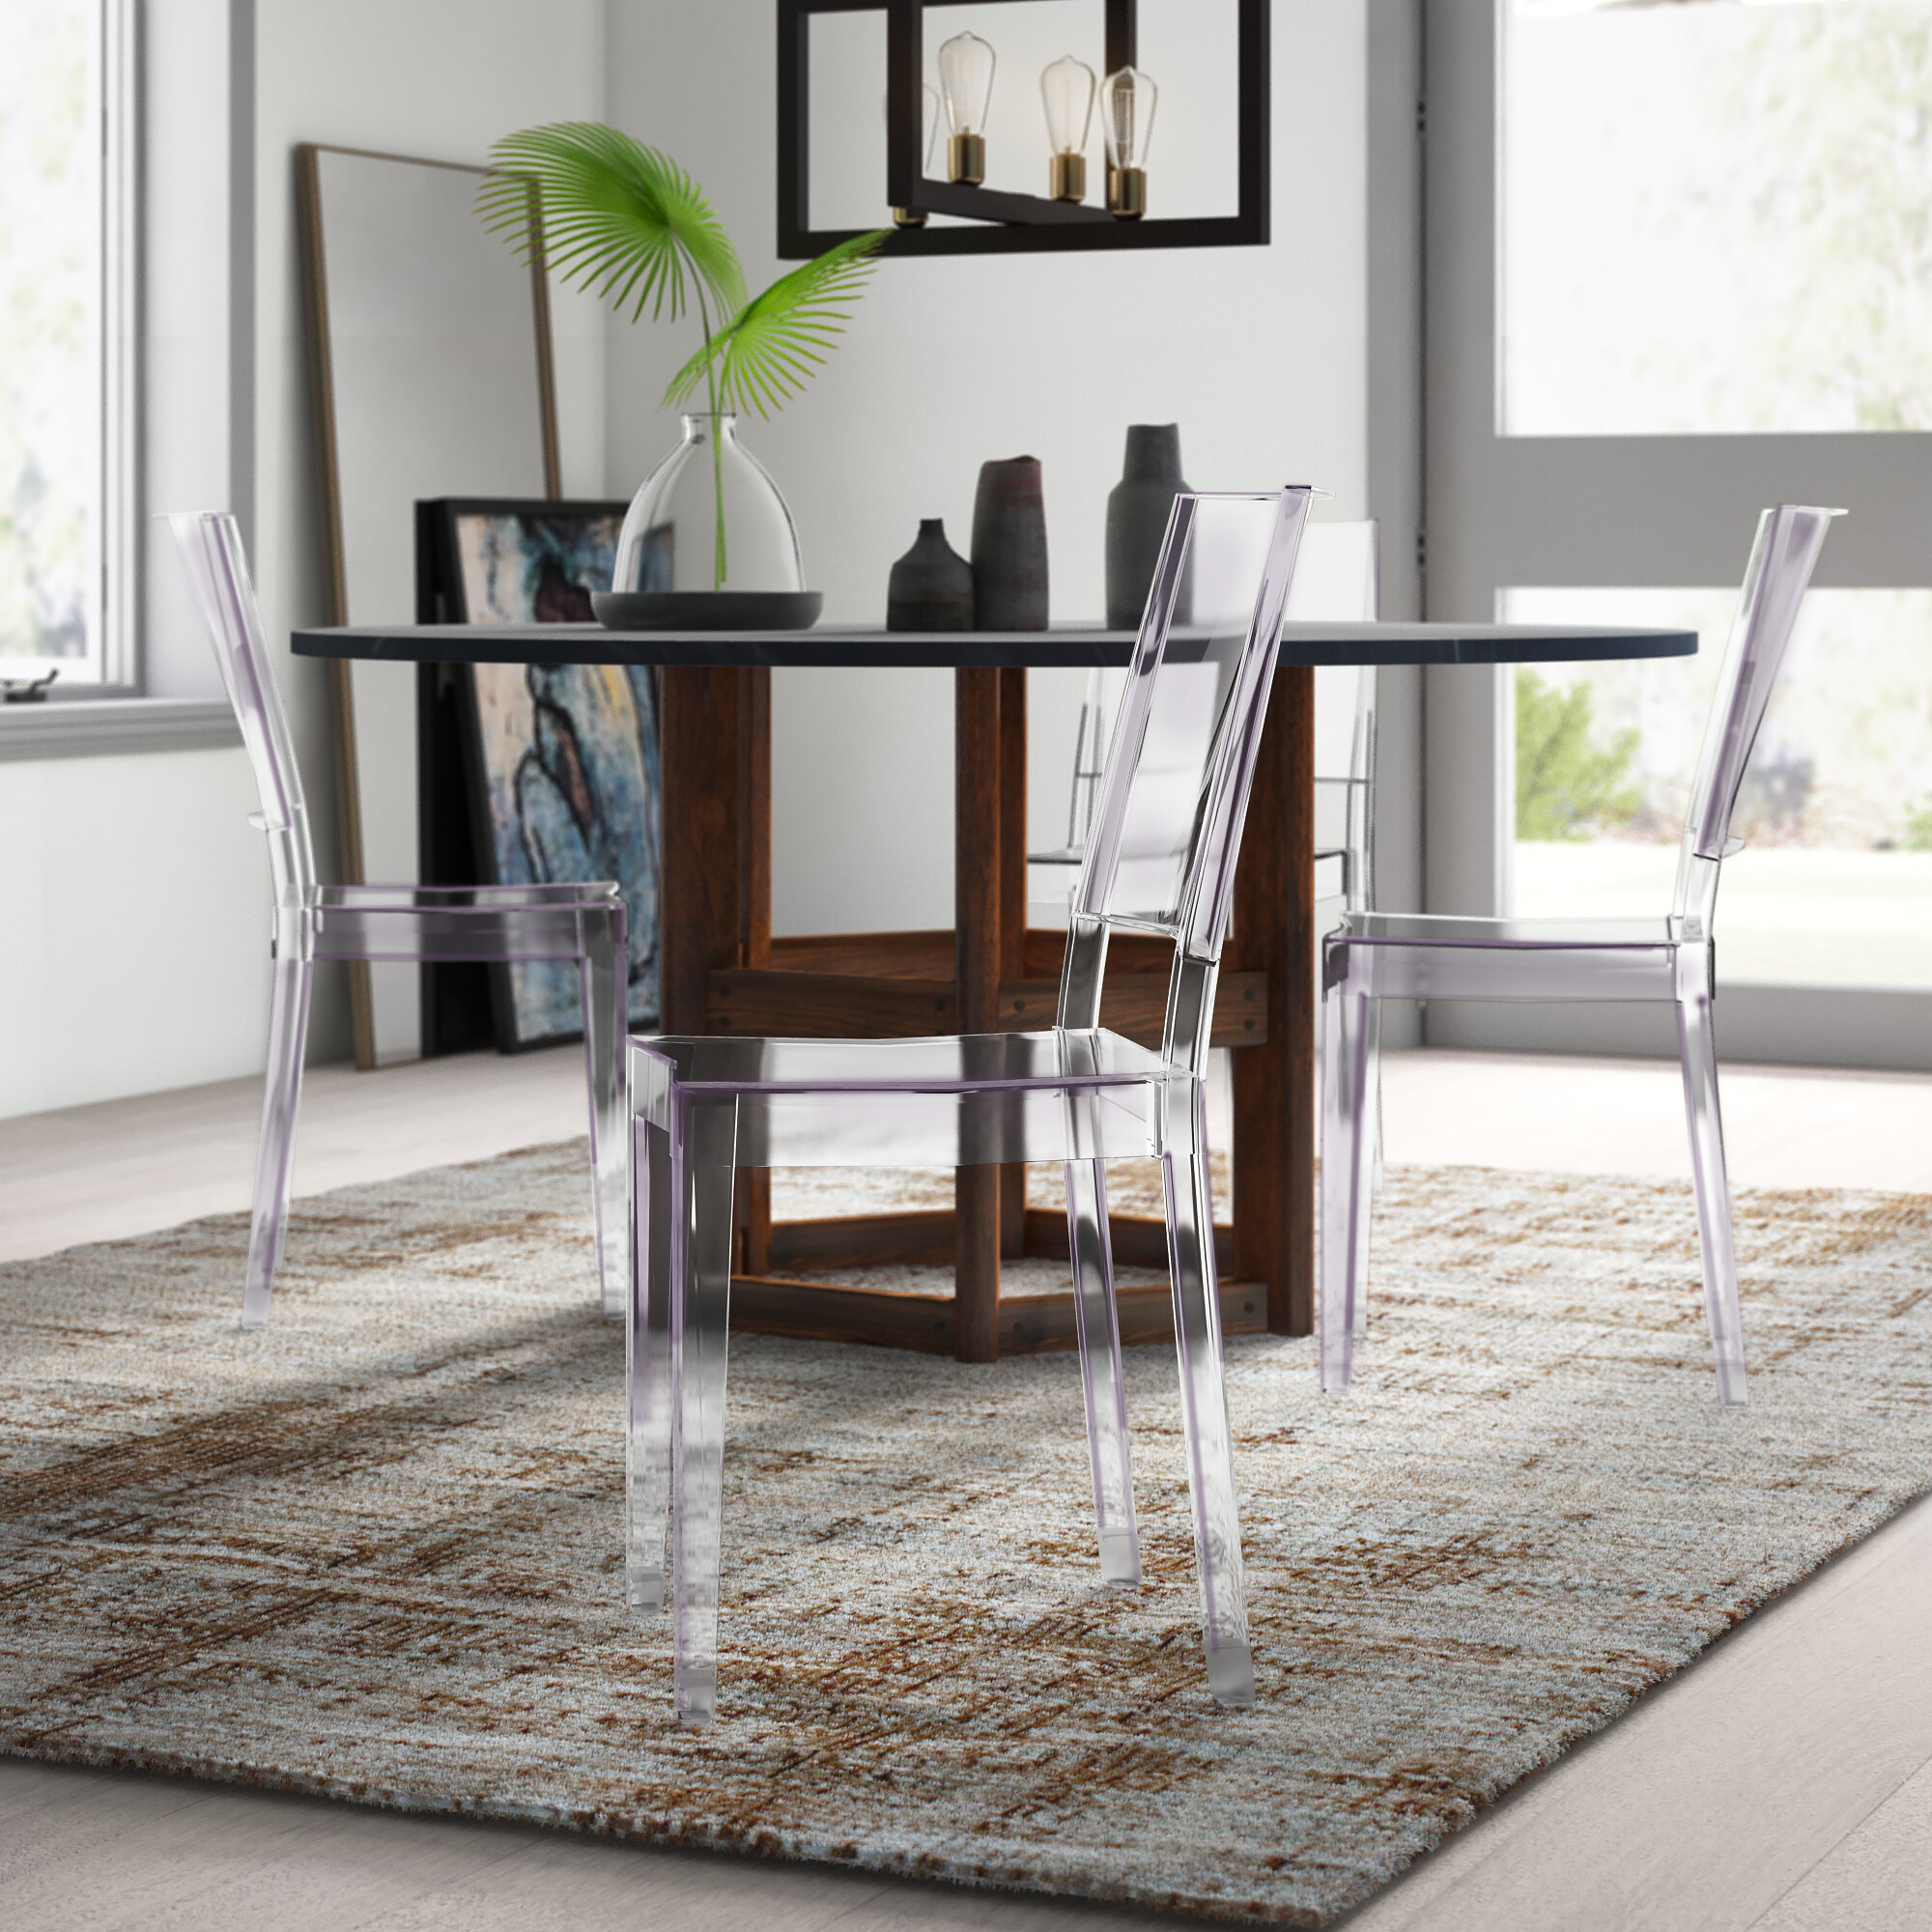 Clear Modern Contemporary Kitchen Dining Chairs You Ll Love In 2021 Wayfair